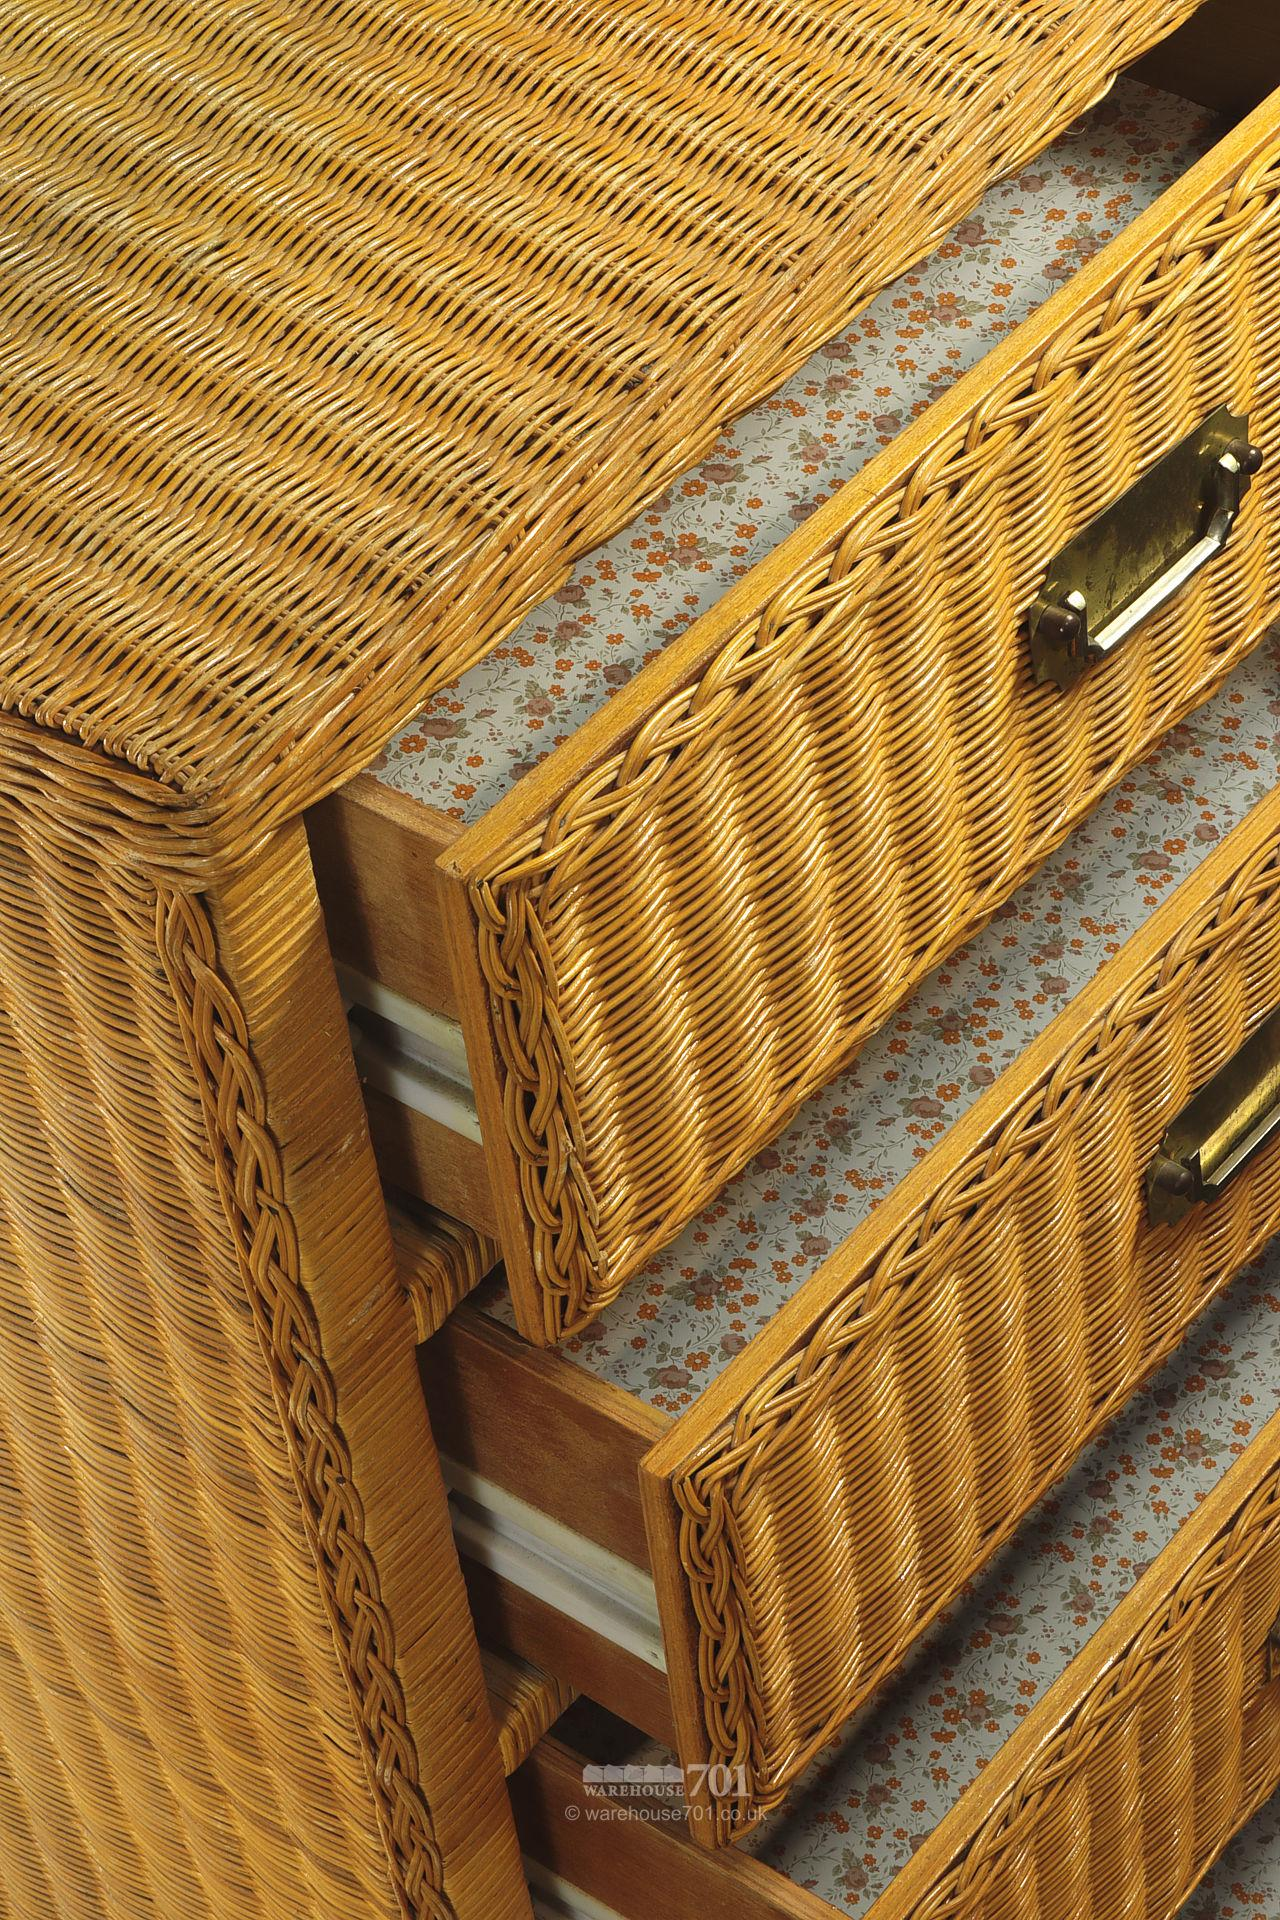 Pair of Vintage Style Wicker Chest of Drawers #2